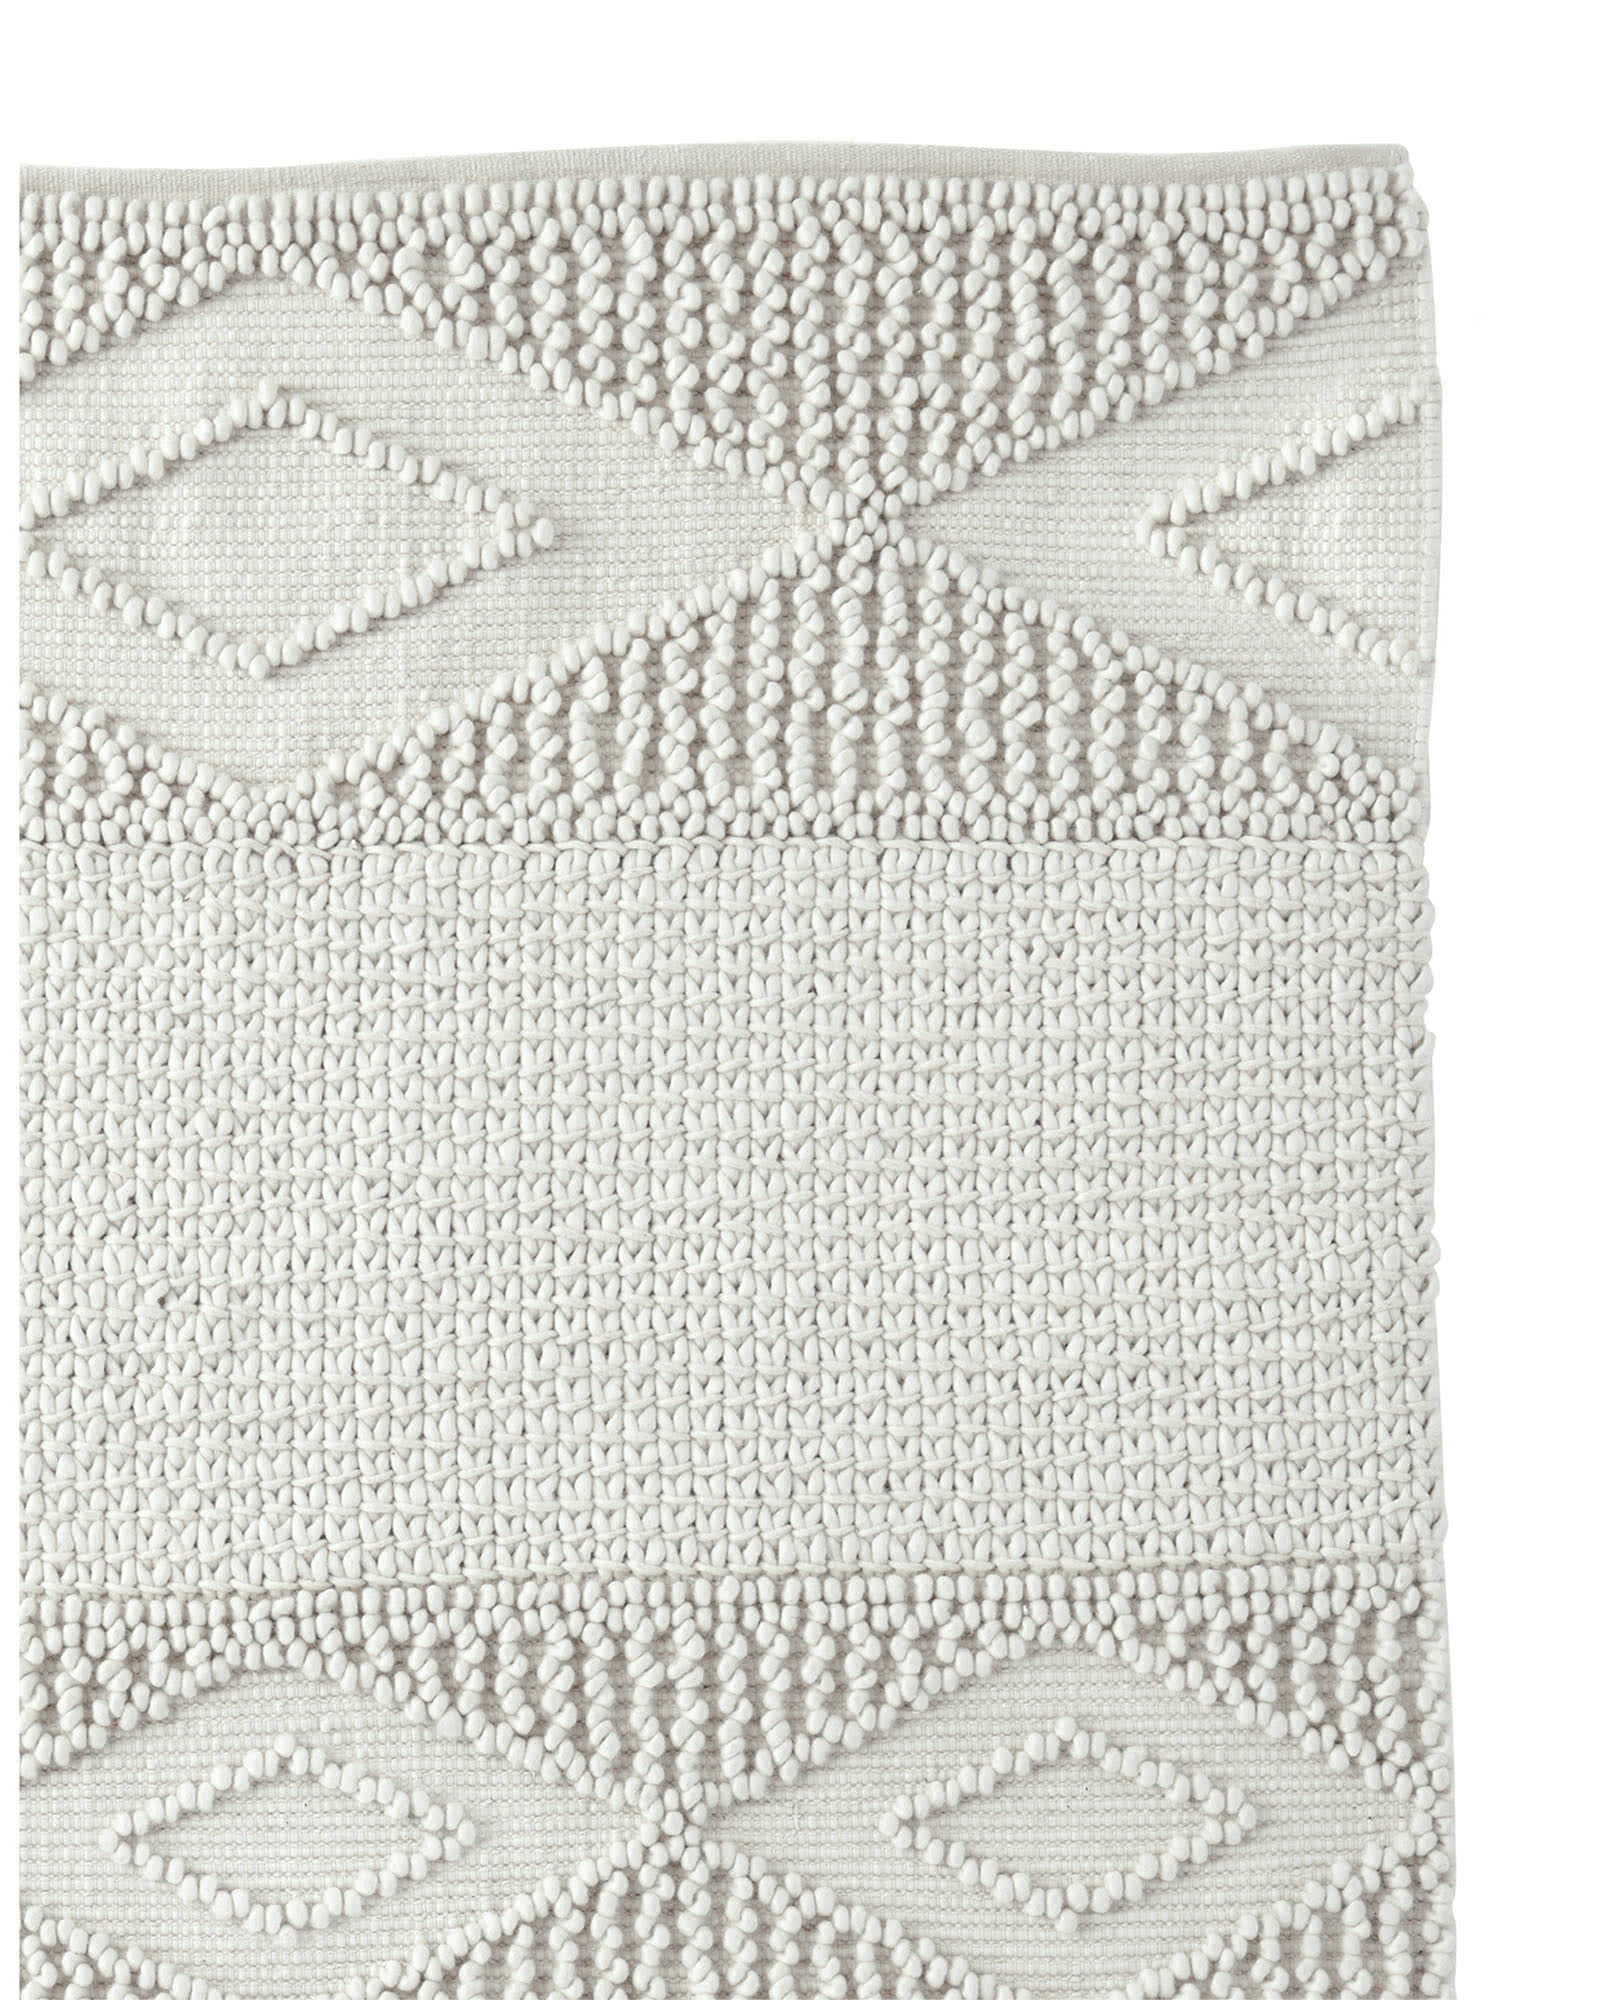 Macram Eacute Wool Rug Swatch